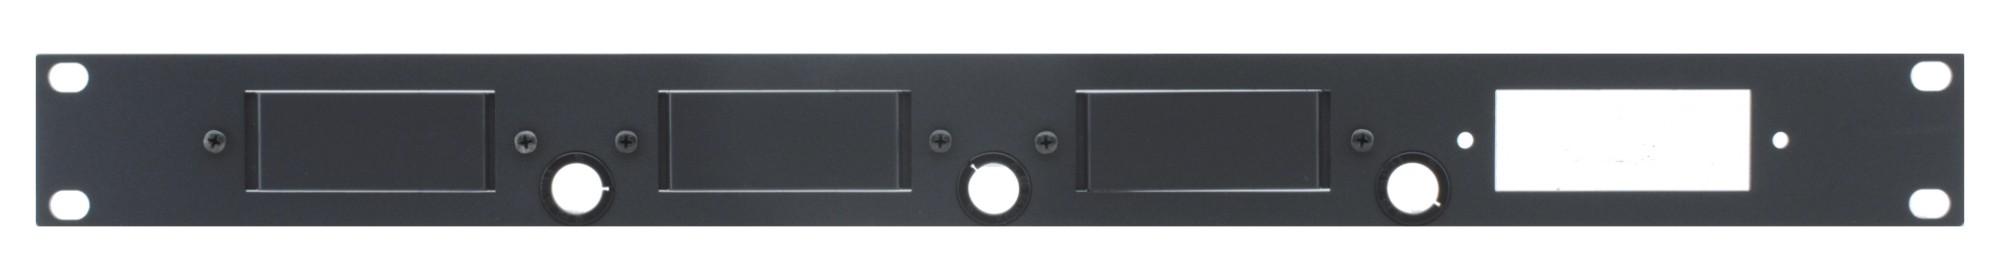 Kramer Electronics RK-4PT rack accessory